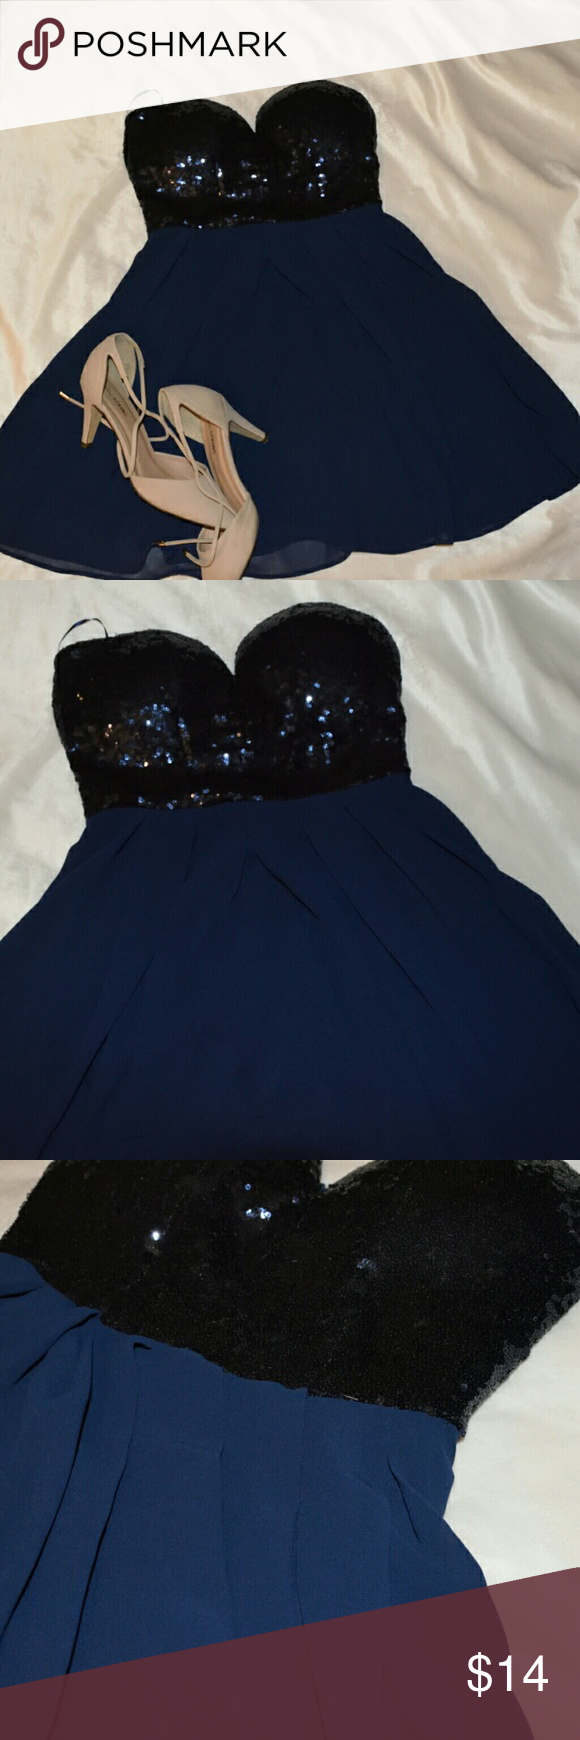 Navy Blue Dress This Is A Short Navy Blue Dress 100 Polyester Strapless The Top Of The Dress Is Mad Navy Blue Short Dress Navy Blue Dresses Windsor Dresses [ 1740 x 580 Pixel ]